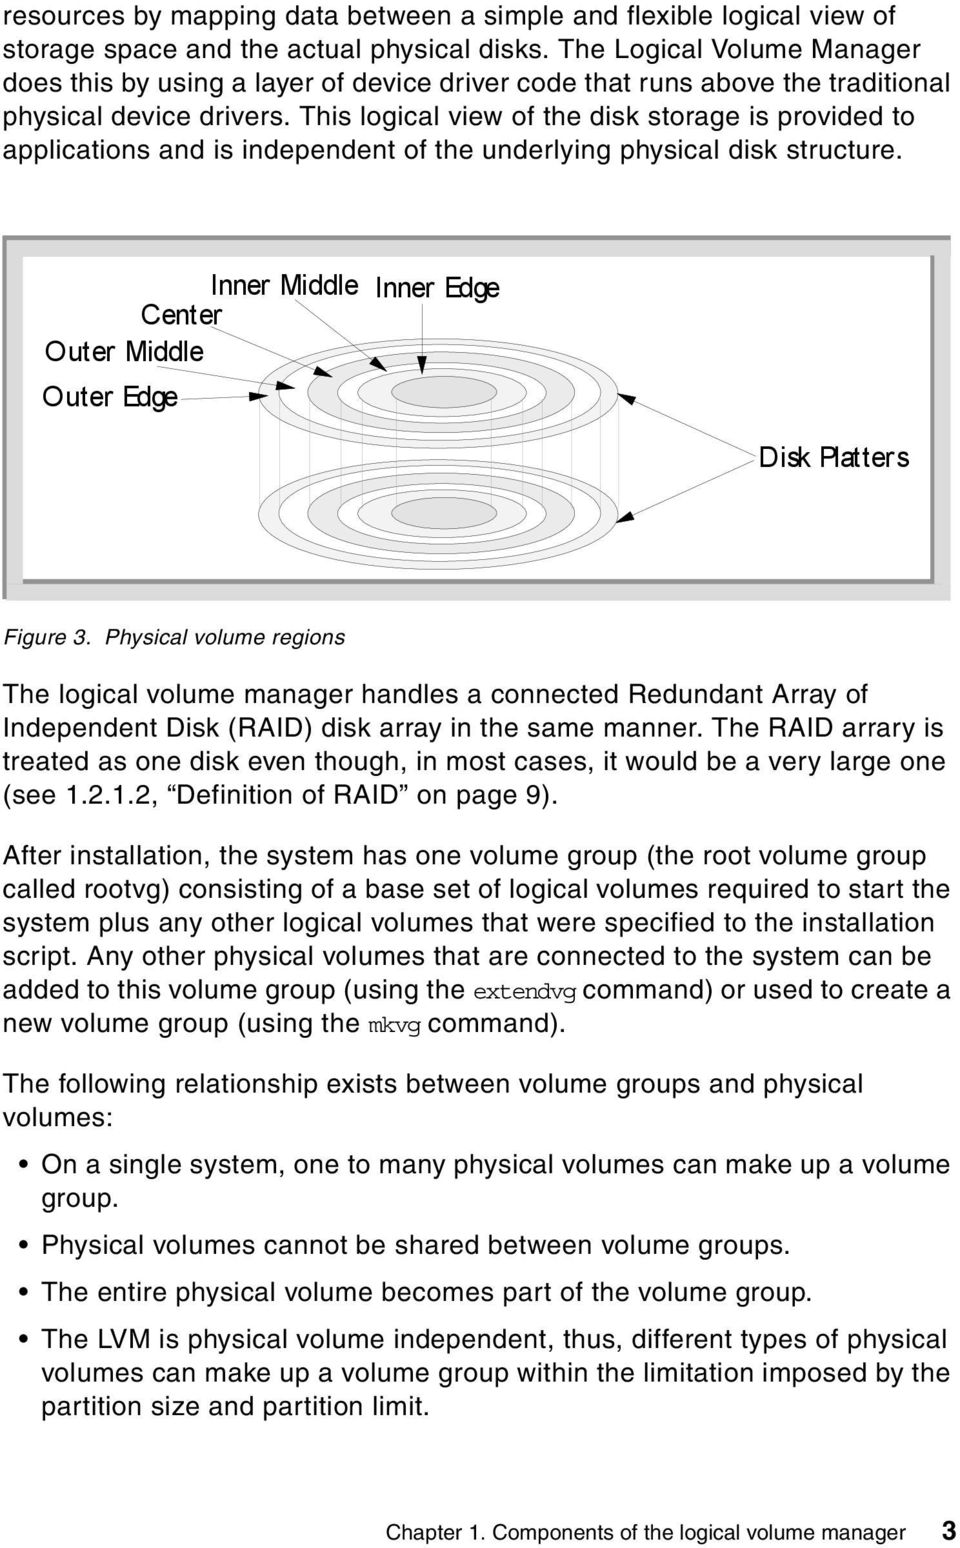 This logical view of the disk storage is provided to applications and is independent of the underlying physical disk structure.